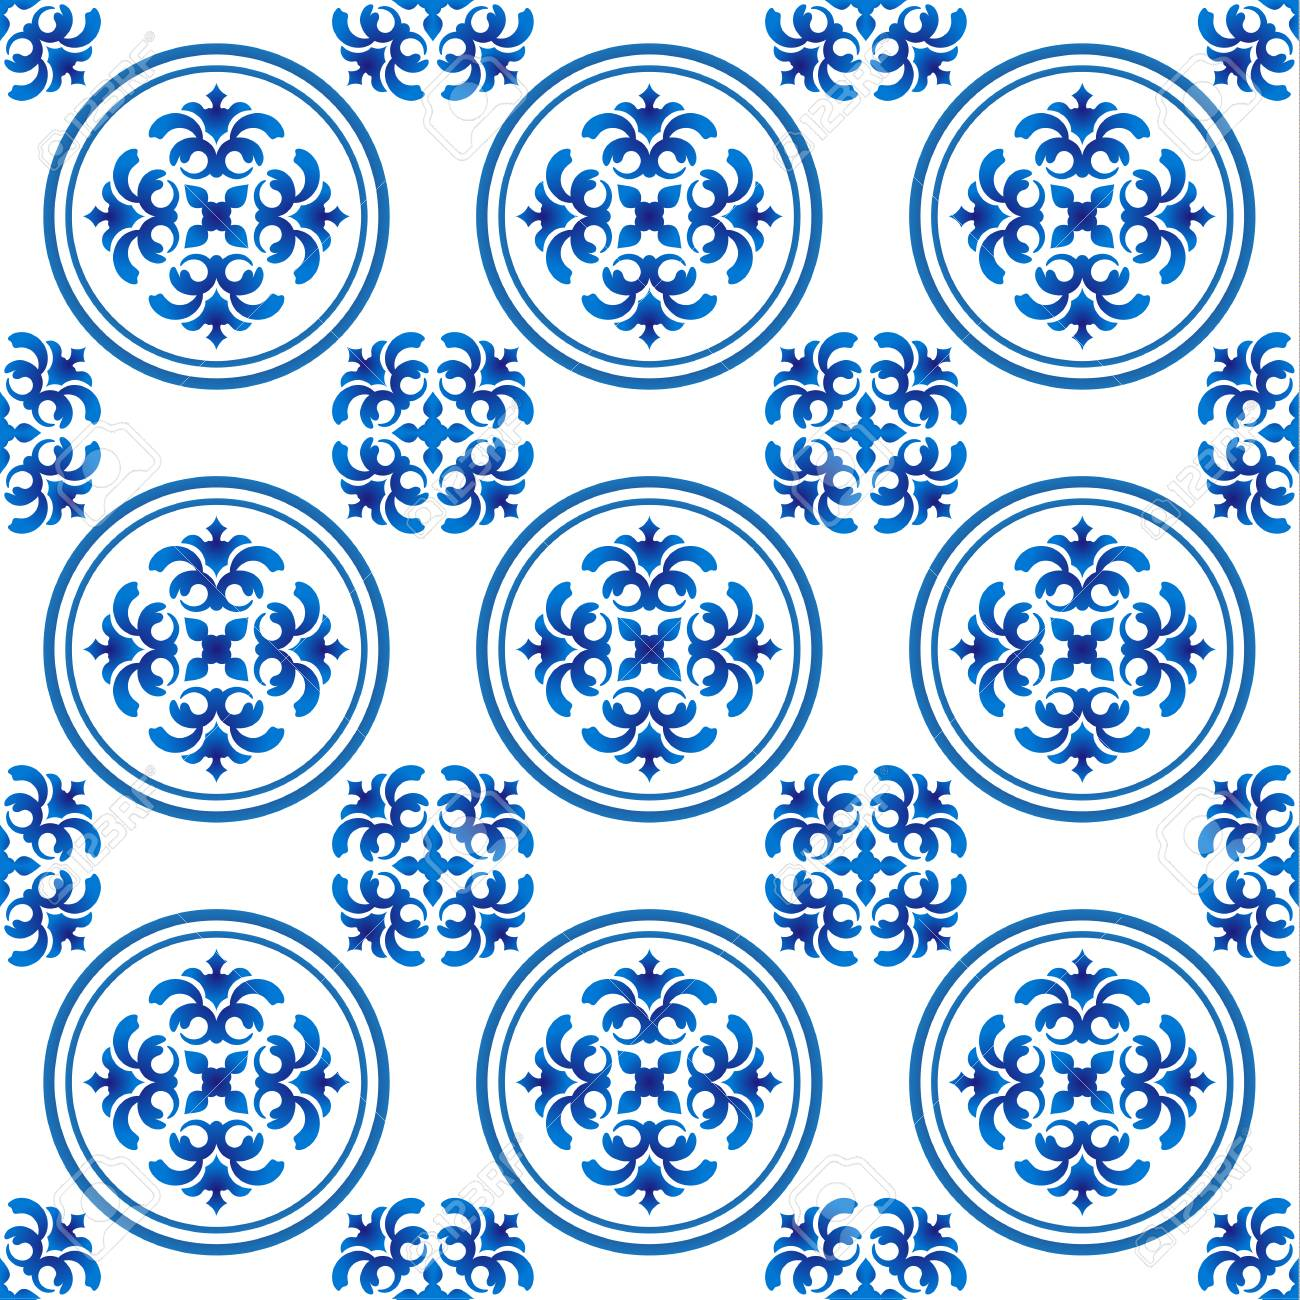 Chinaware Pattern Seamless Blue And White For Design Porcelain Royalty Free Cliparts Vectors And Stock Illustration Image 97574846